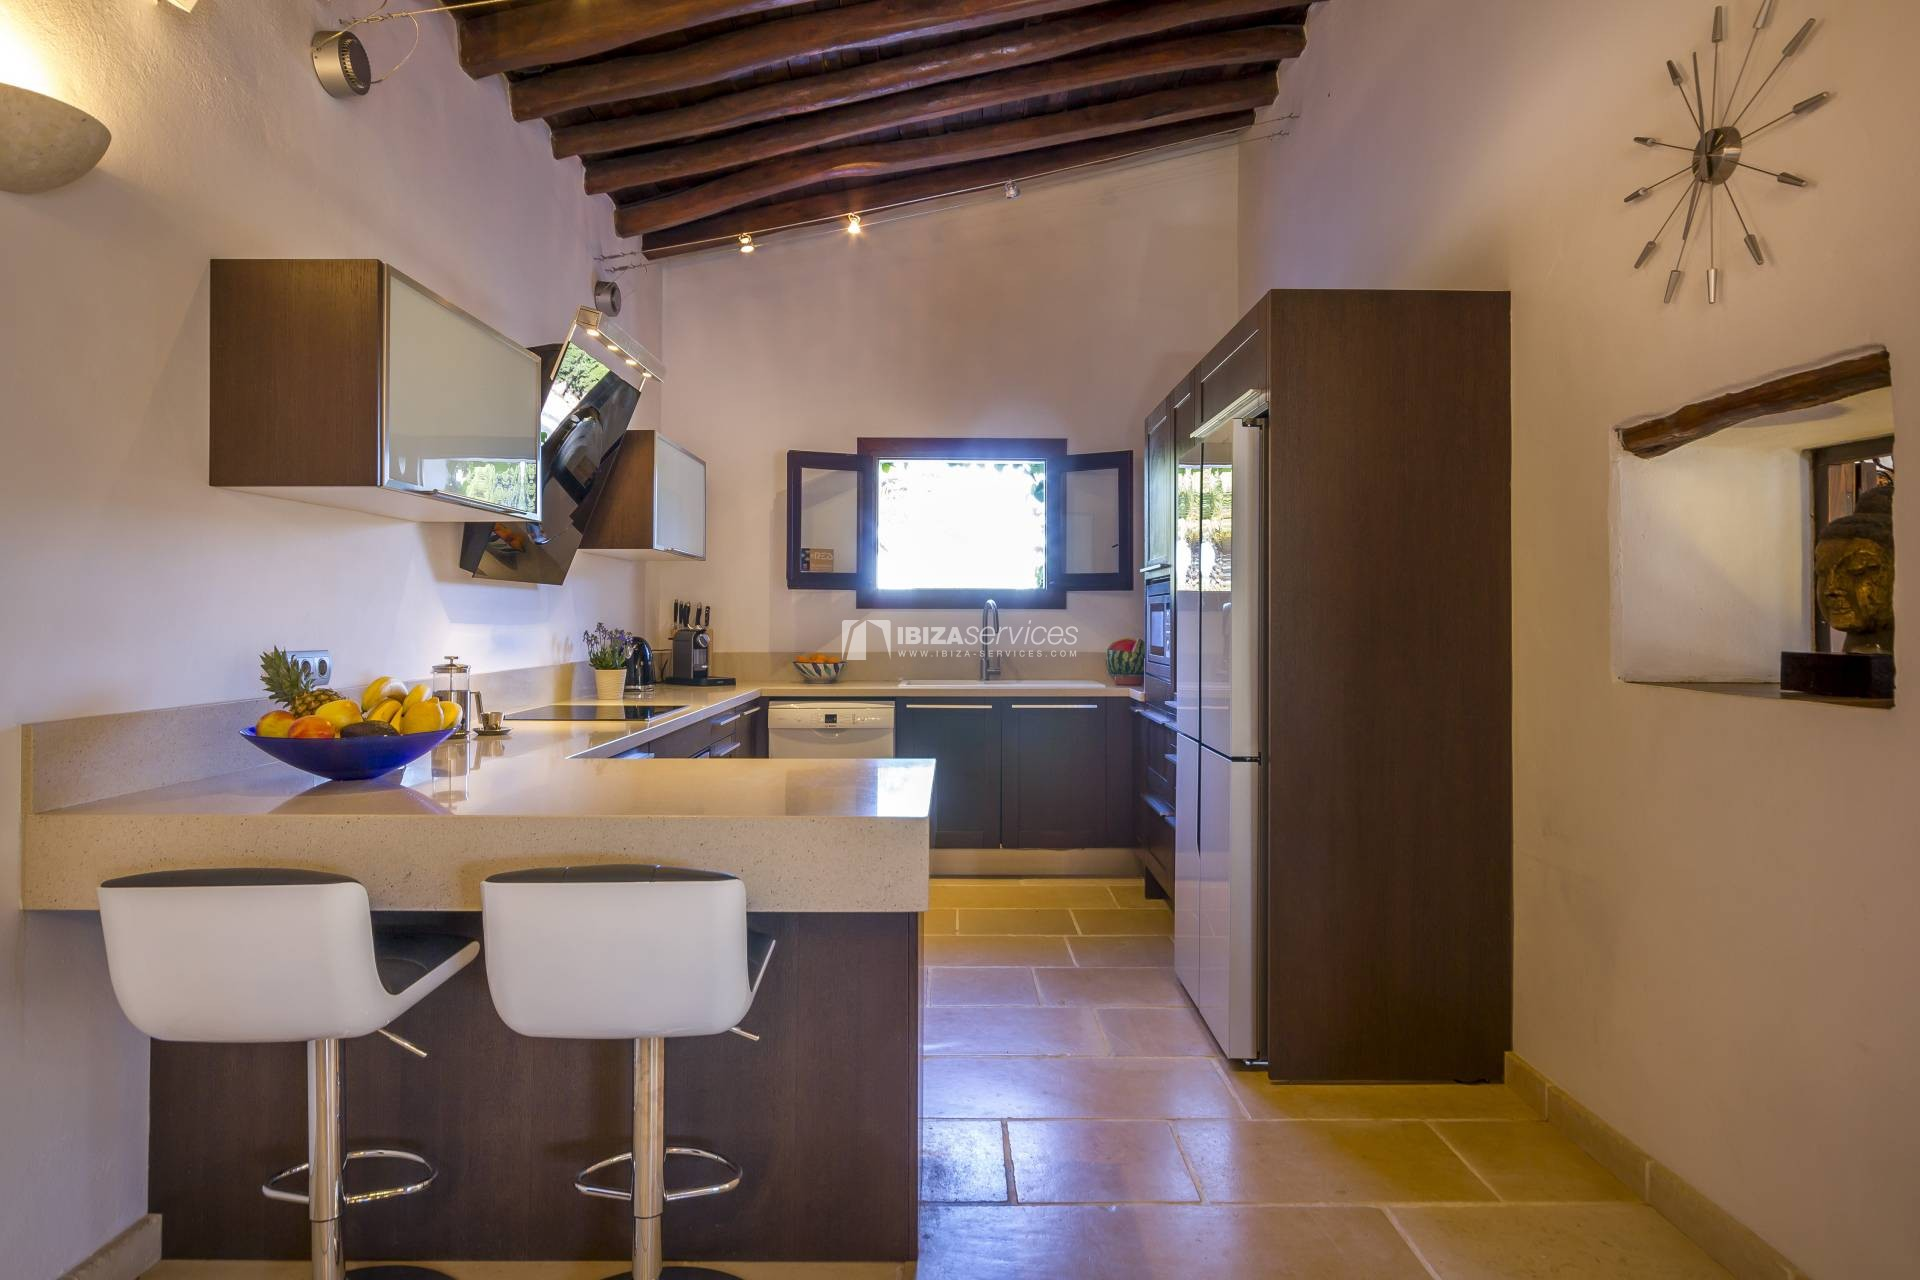 Beautifully finca located between St gertudis and San lorenzo perspectiva 20